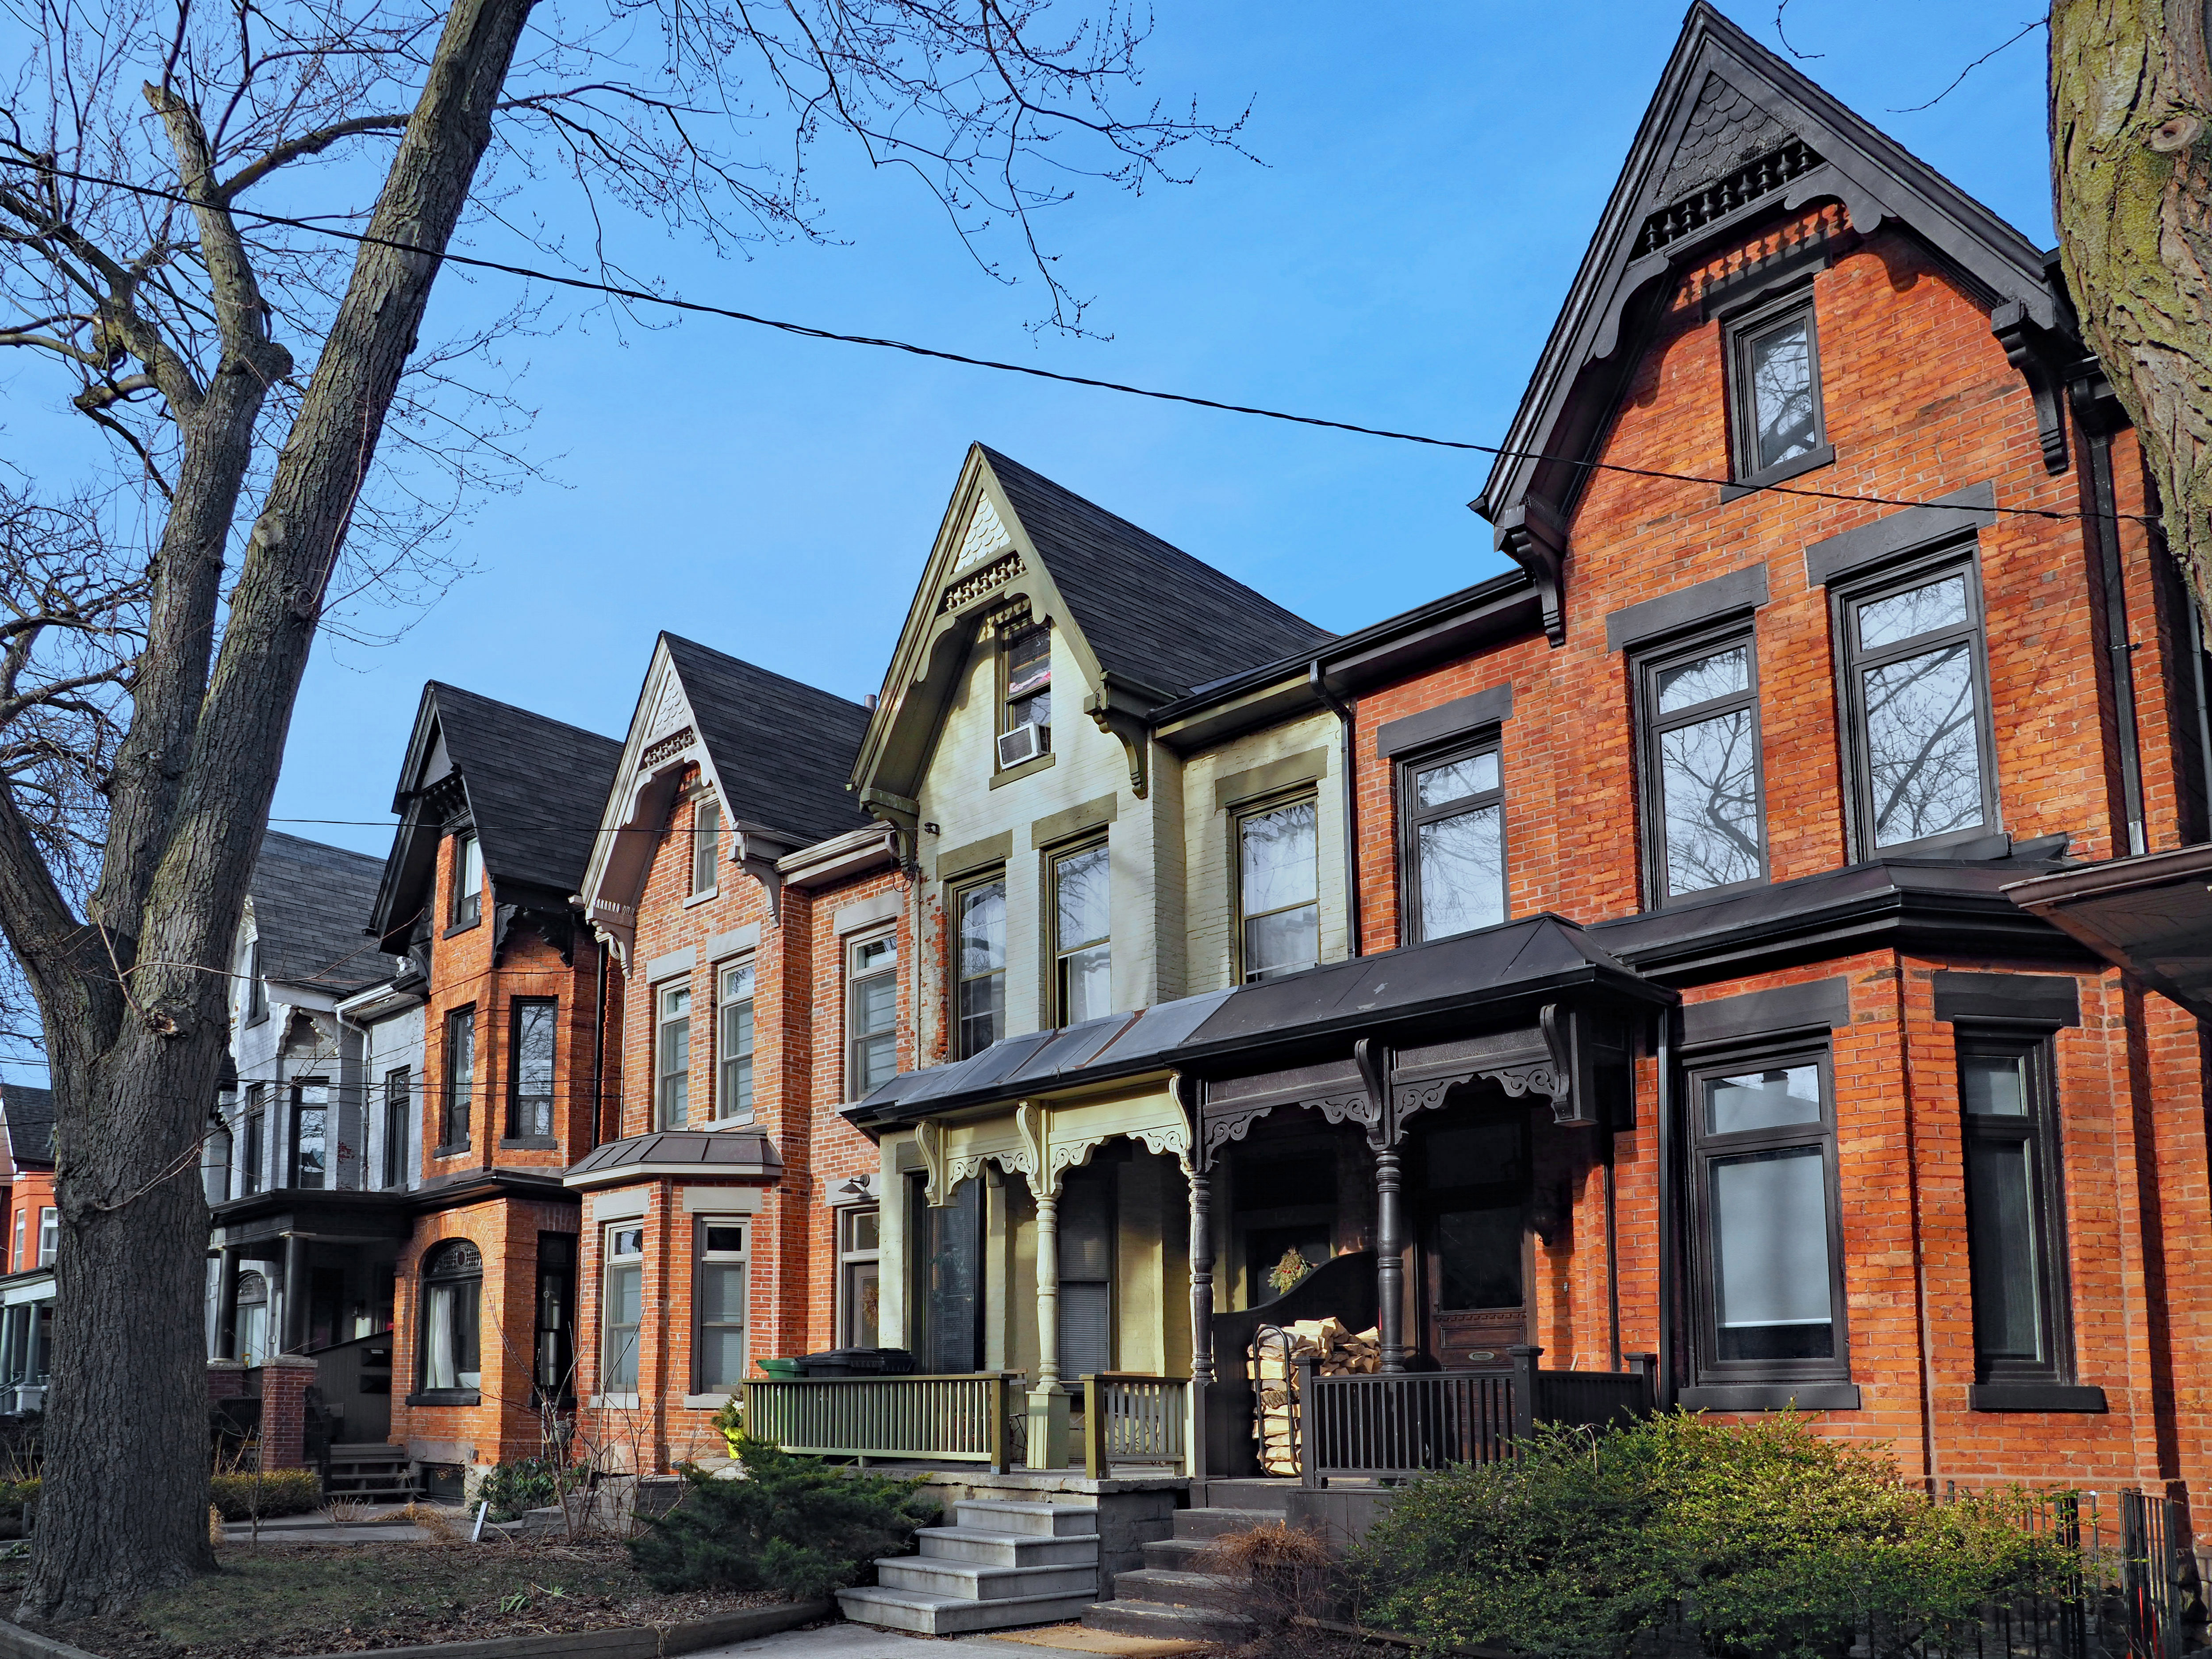 A row of brick houses with Victorian embellishments.